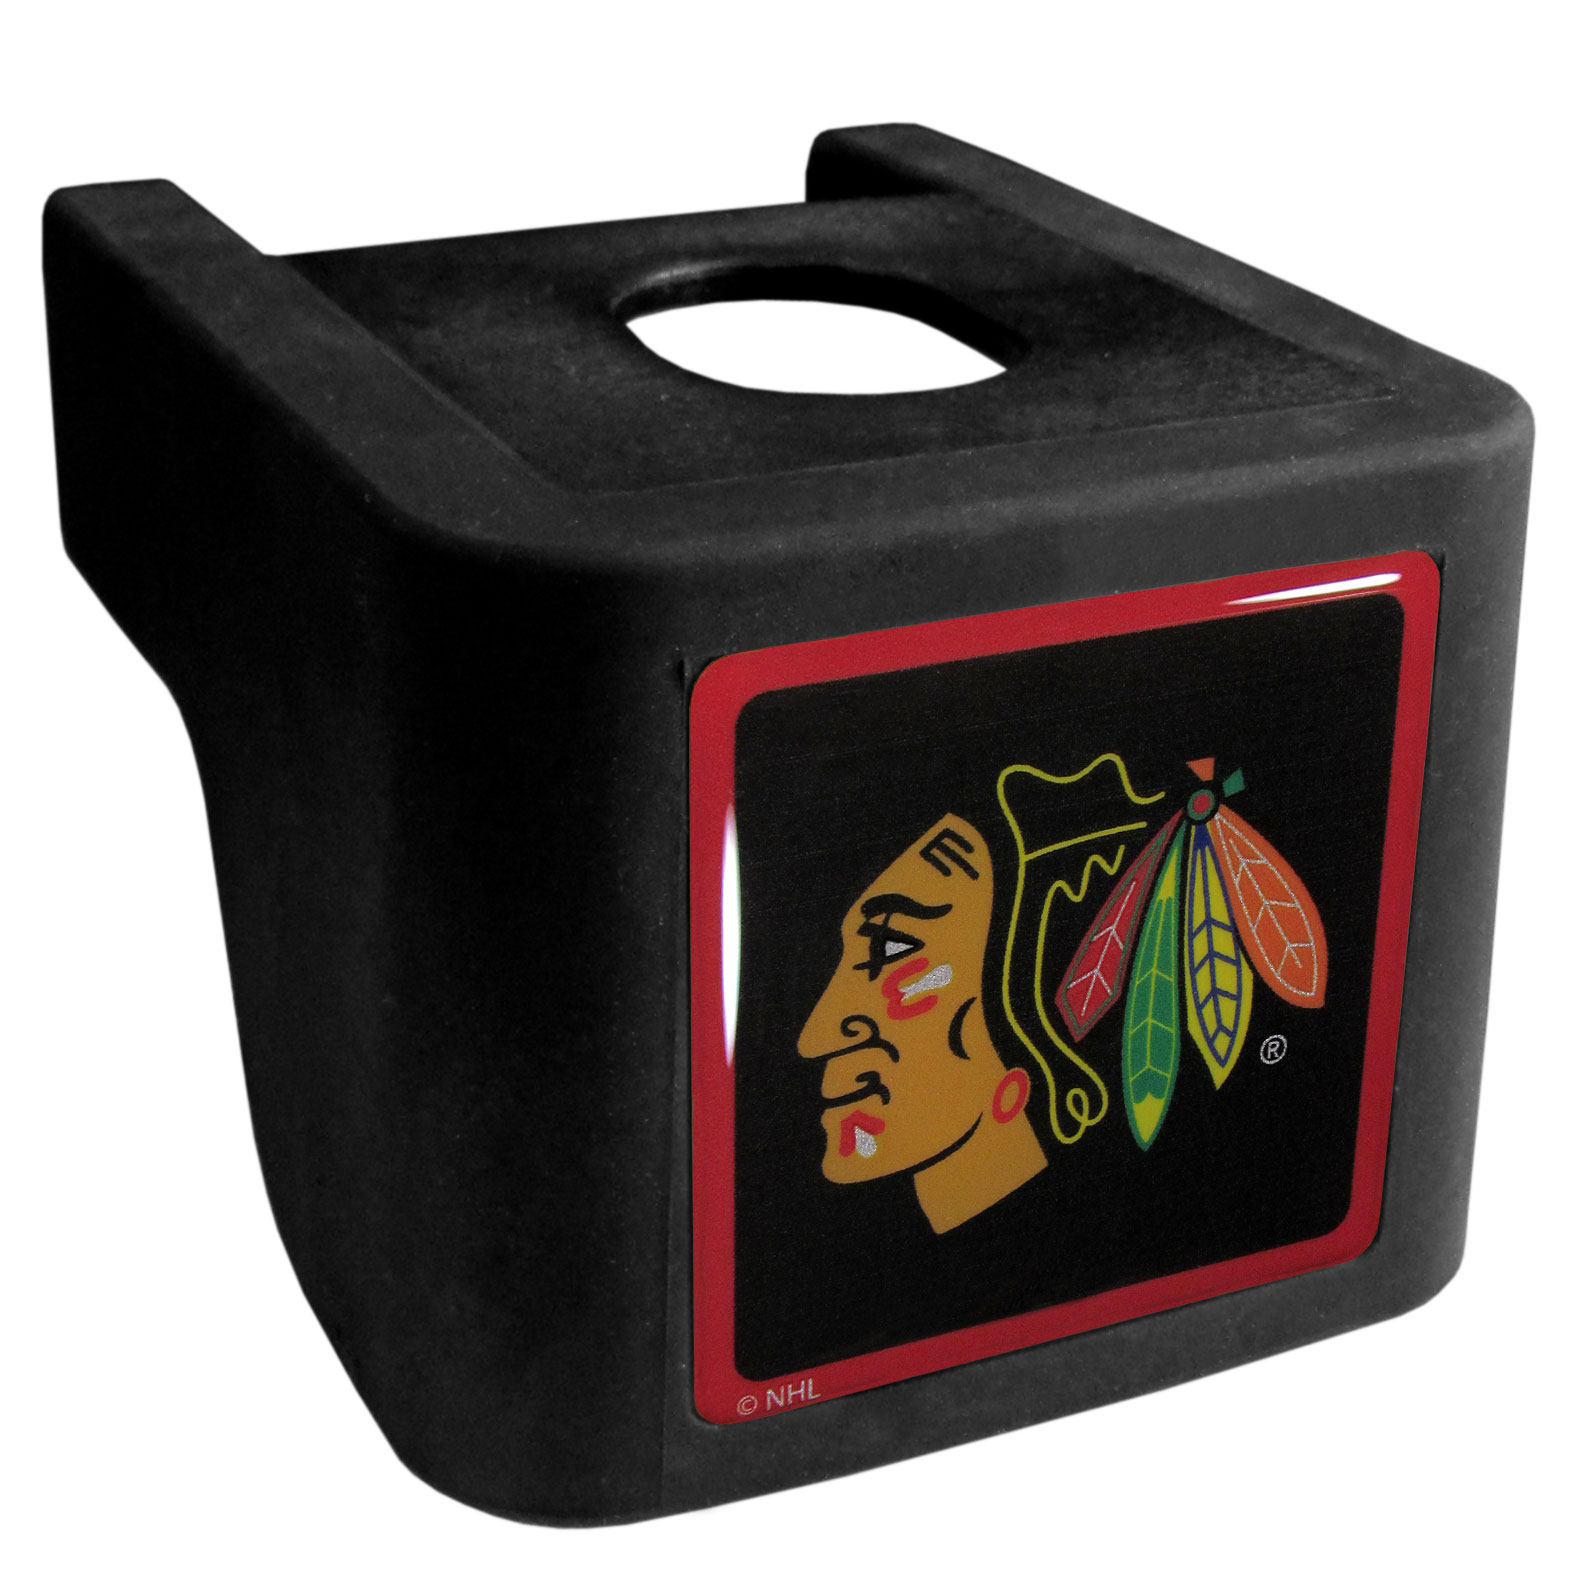 Chicago Blackhawks® Shin Shield Hitch Cover - This unique hitch cover features a large Chicago Blackhawks® logo. If you have ever hooked up a trailer or boat your have probably smashed your shins on the ball hitch a few times. This revolutionary shin shield hitch cover provides your much abused shins with the protection they deserve! The tough rubber hitch is rated to work with Class V hitch receivers hauling up to 17,000 gross trailer weight and 1,700 tongue weight allowing you to leave it on while hauling.